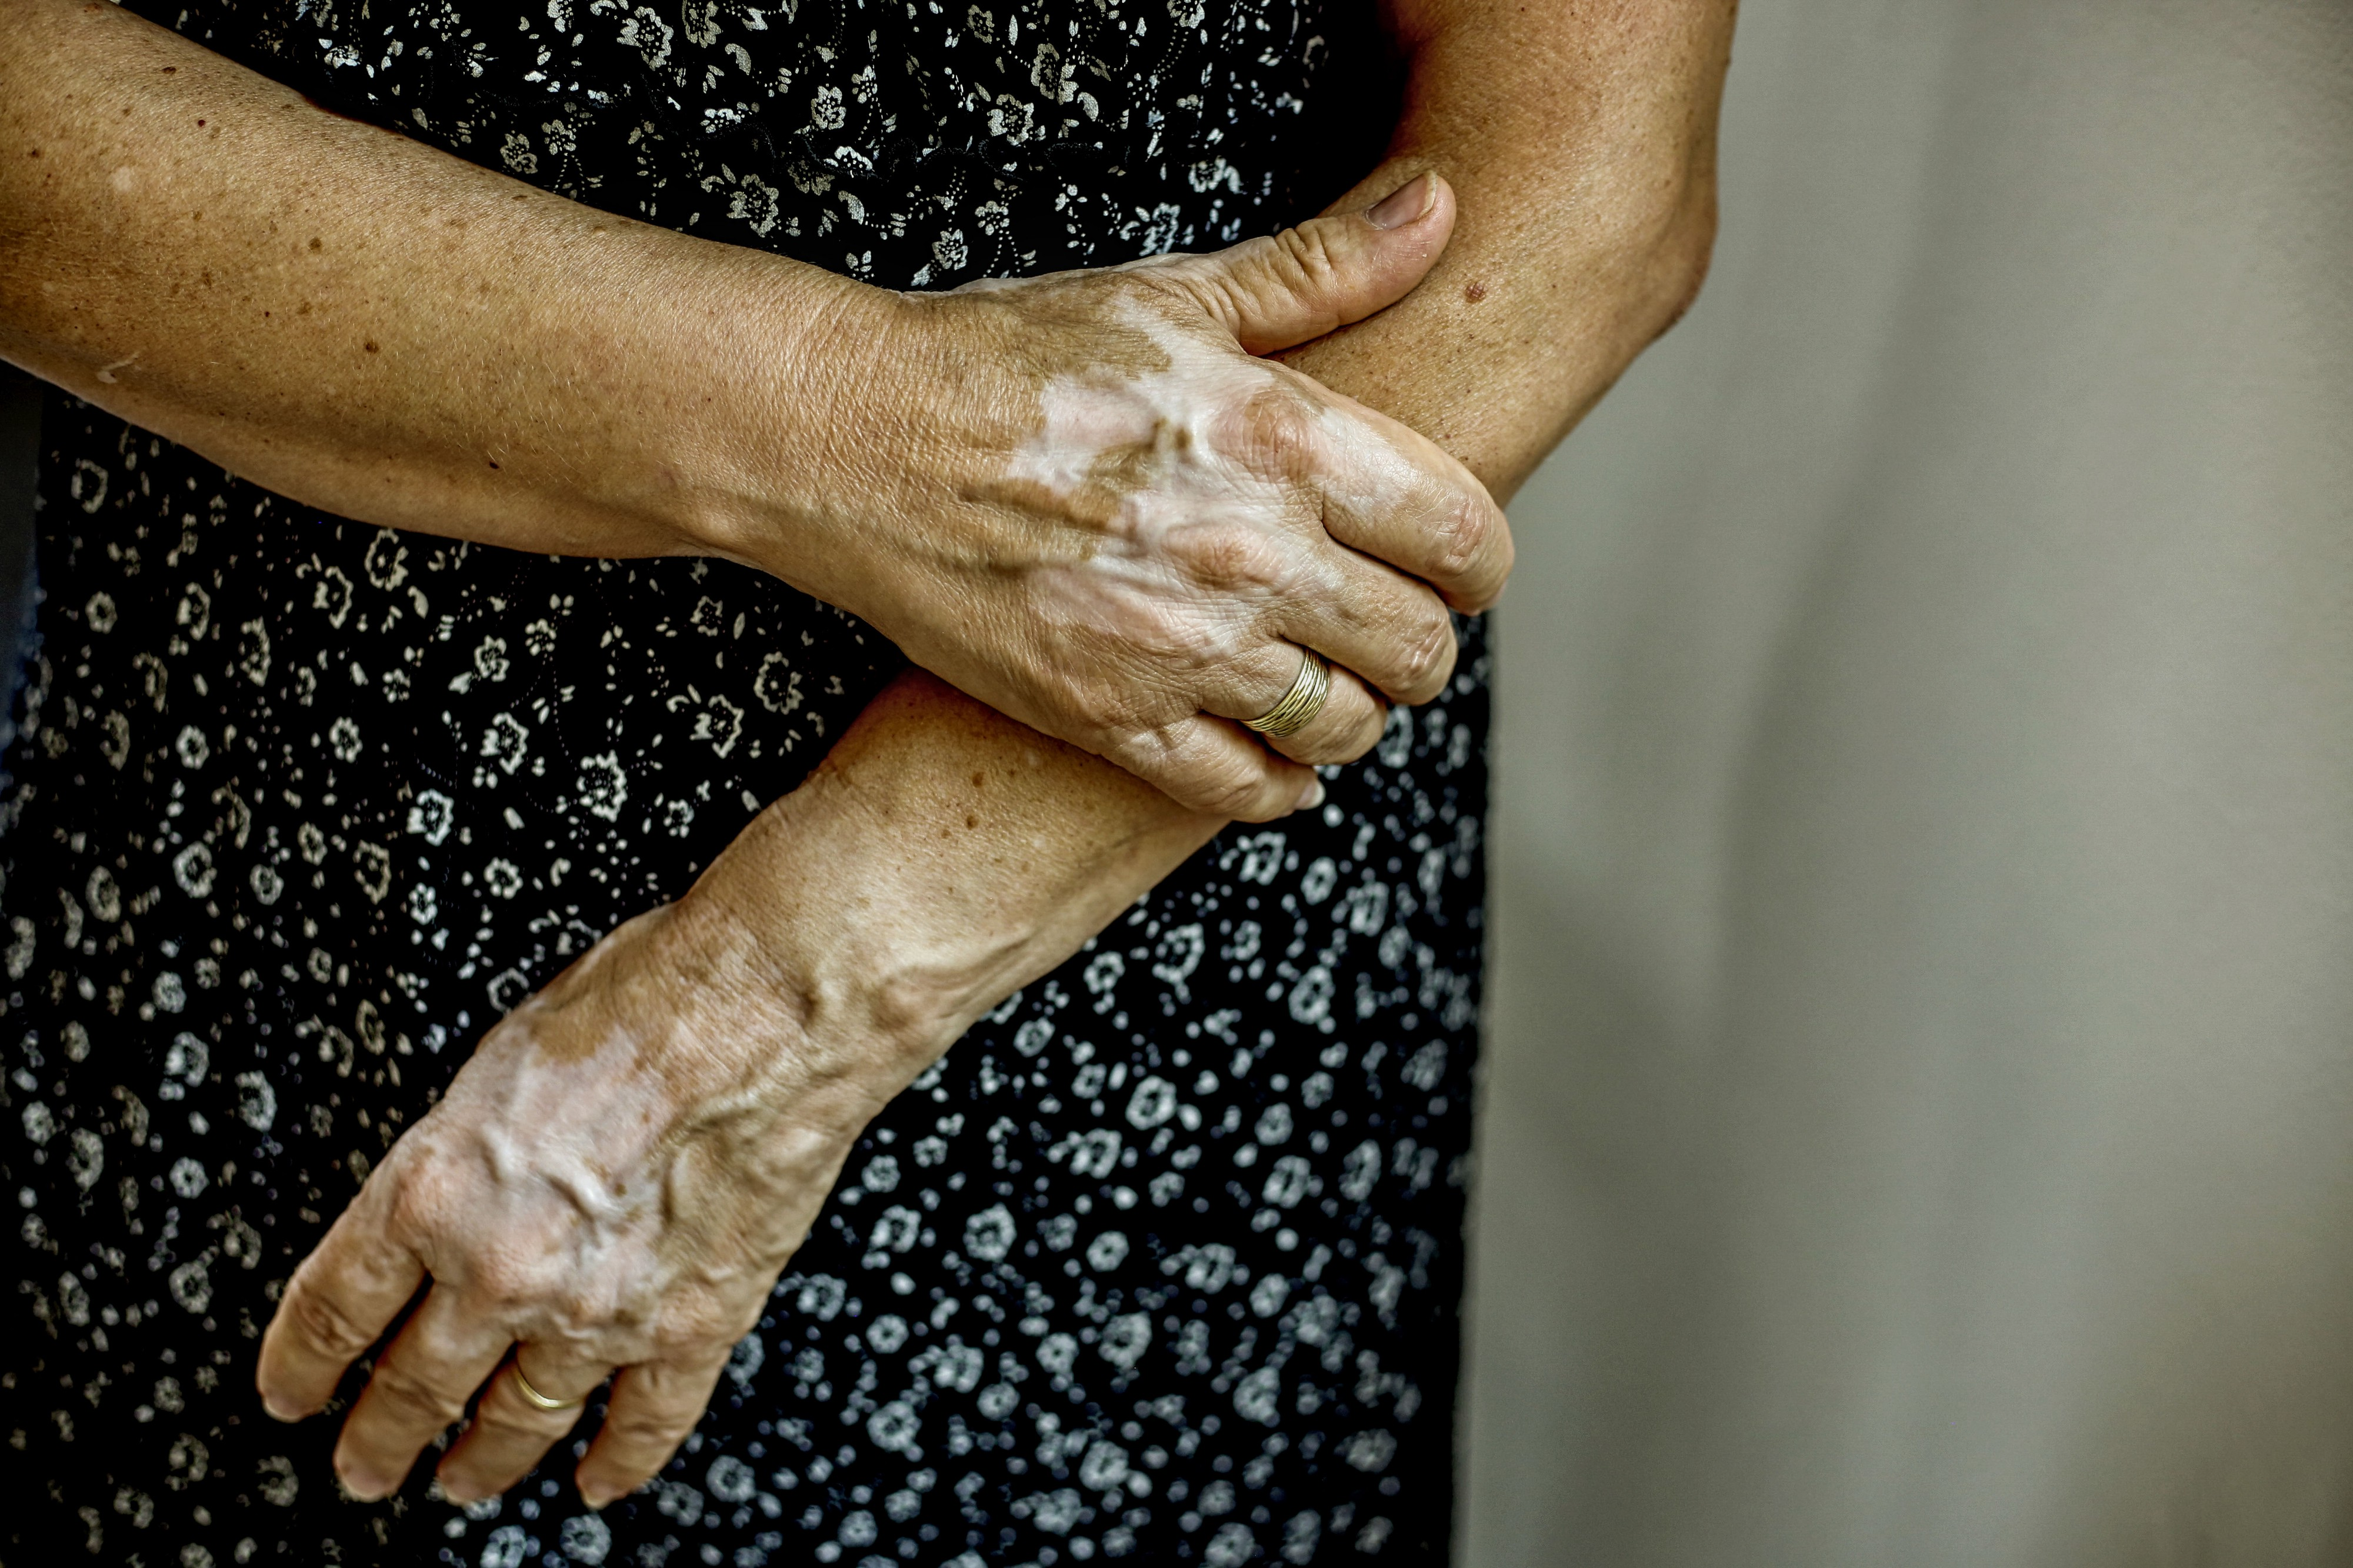 A close up of a woman's arms and hands with vitiligo.